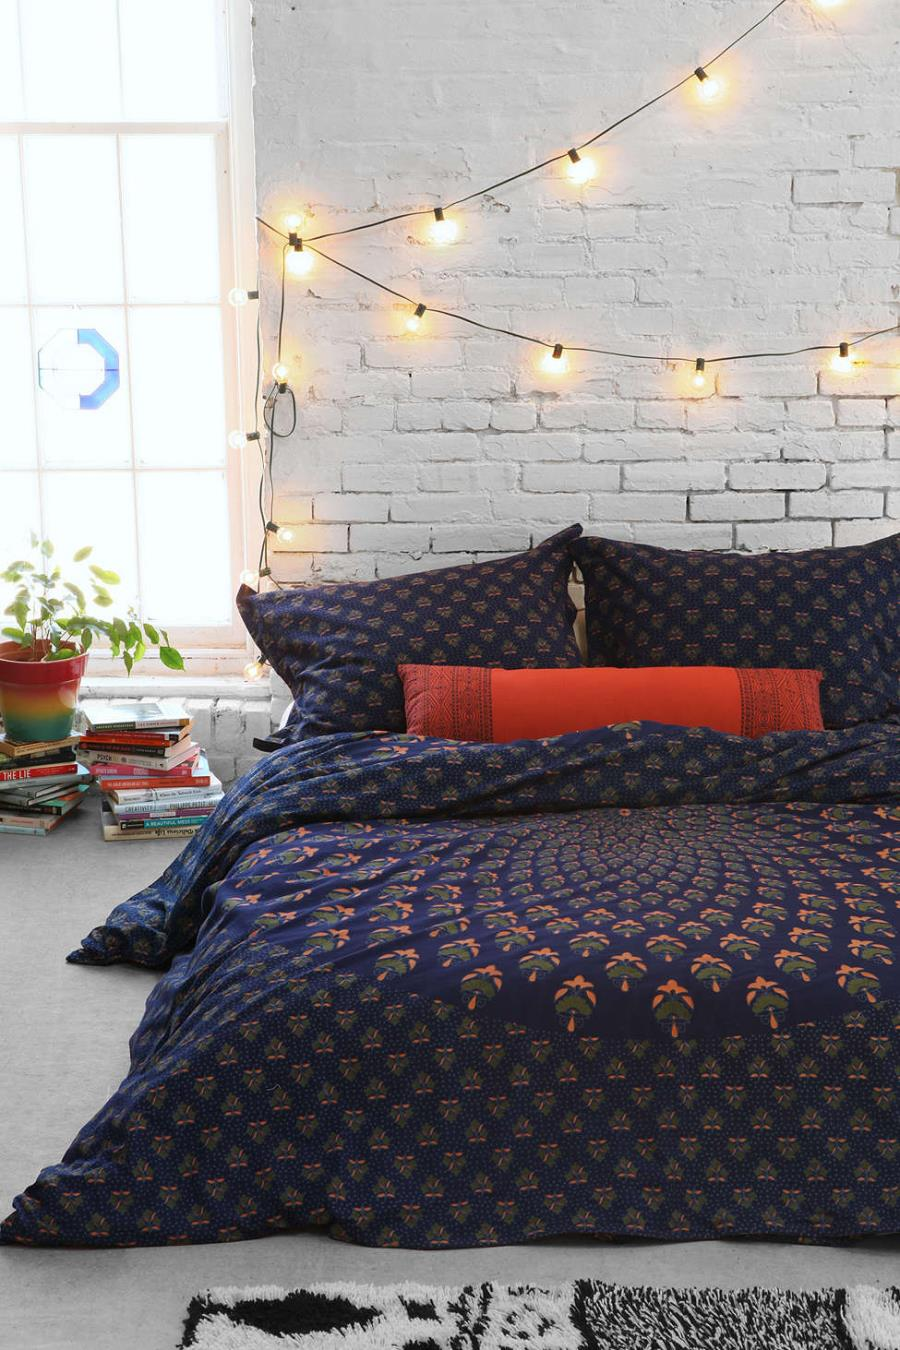 Paisley duvet cover from Urban Outfitters